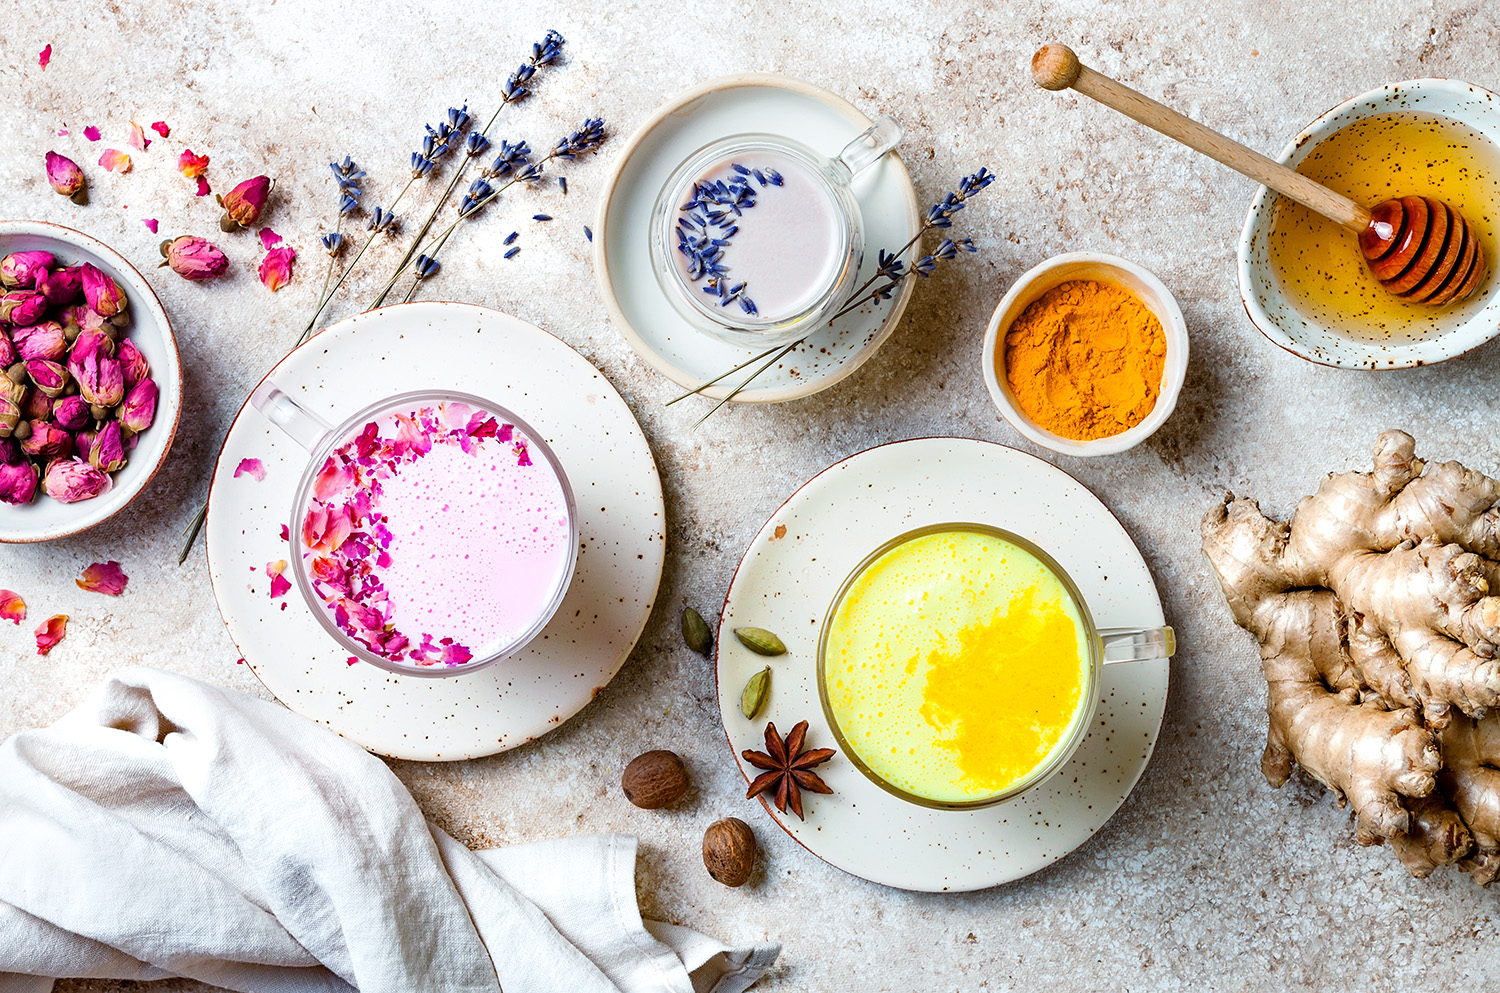 Varieties of moon milk mugs arranged on a counter with turmeric, honey, and ginger